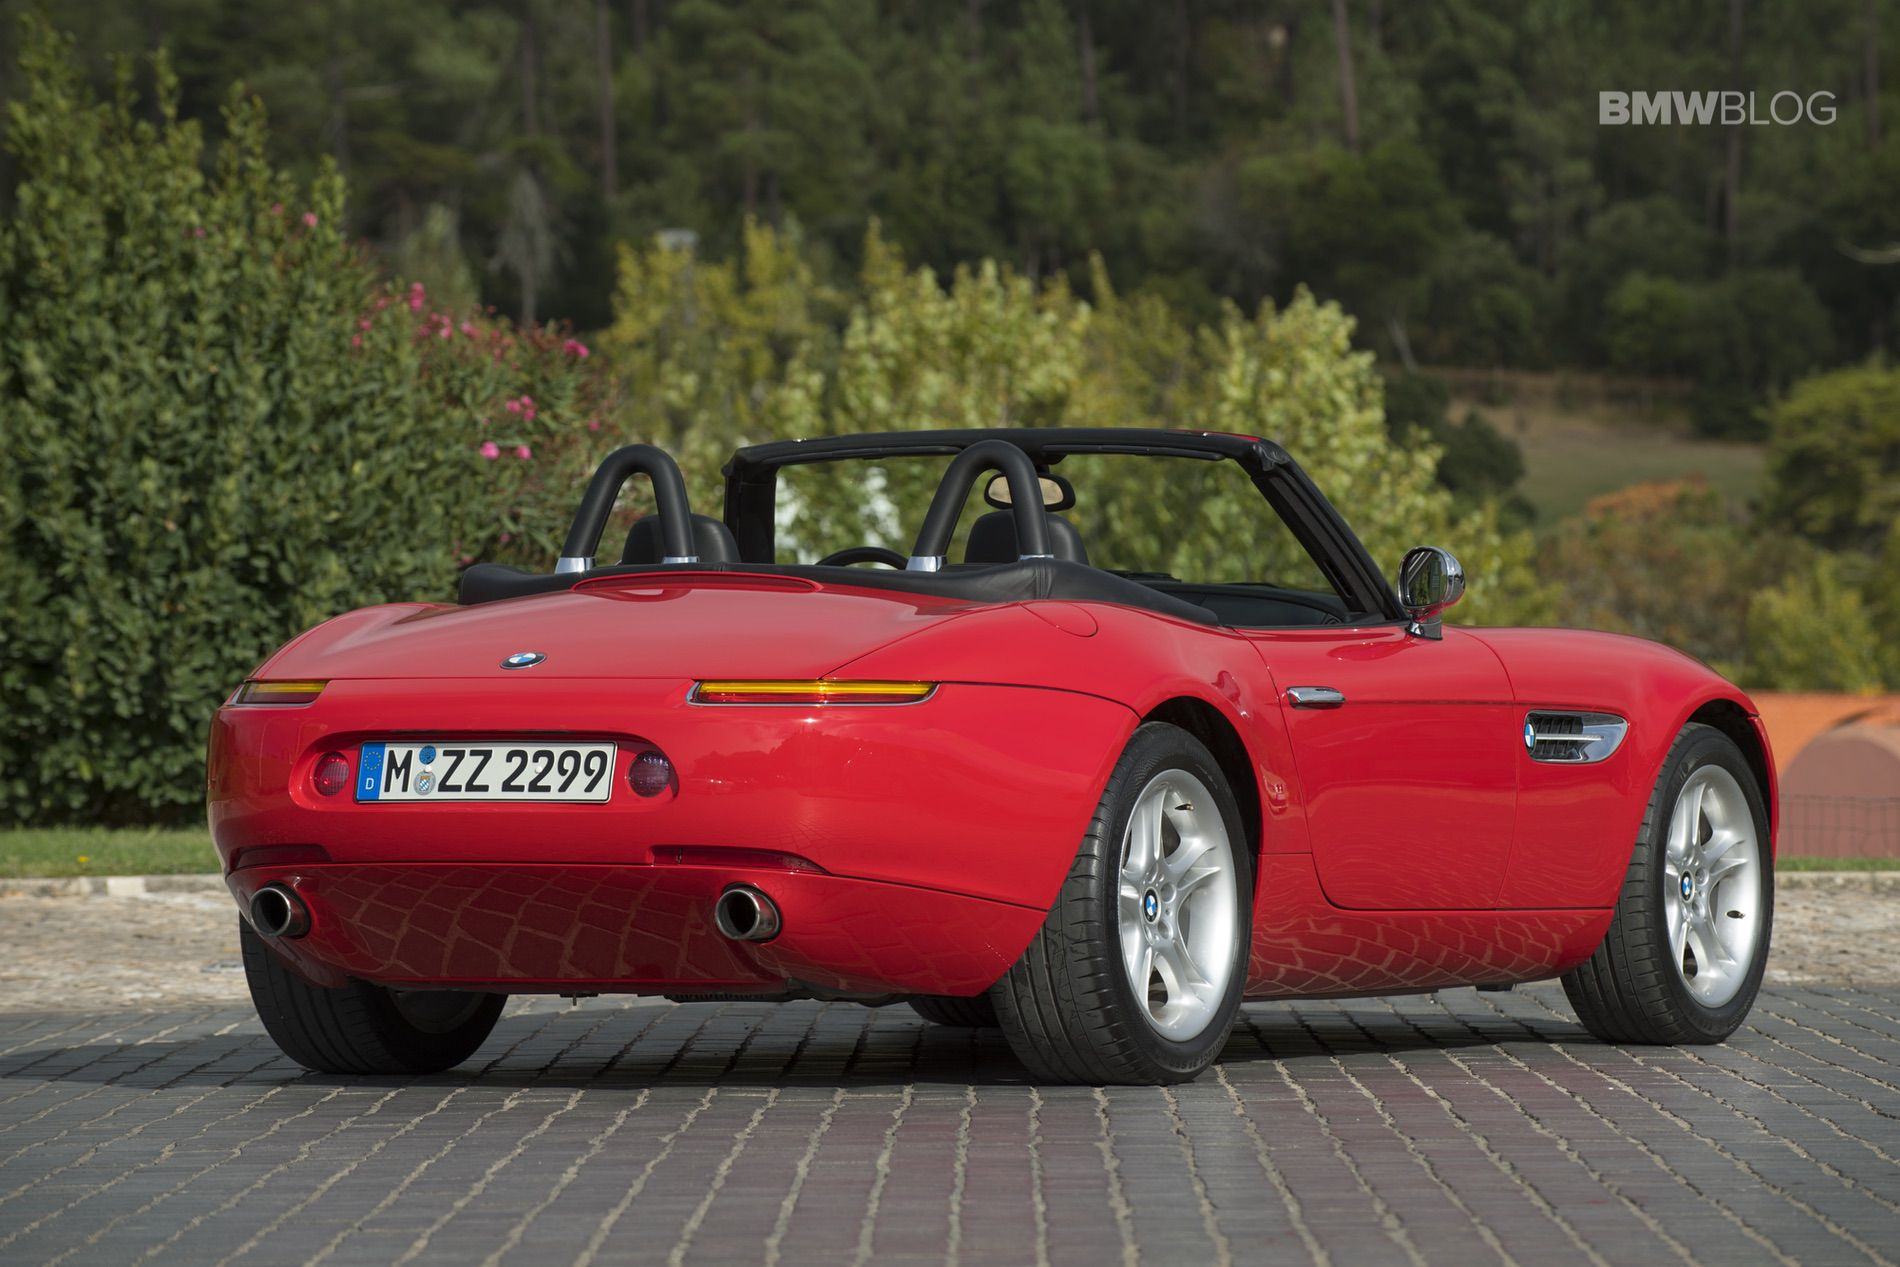 Inside The Bmw Z8 Combines Retro Touches With A Telescoping Steering Wheel And Seats Plenty Of Room For Two S